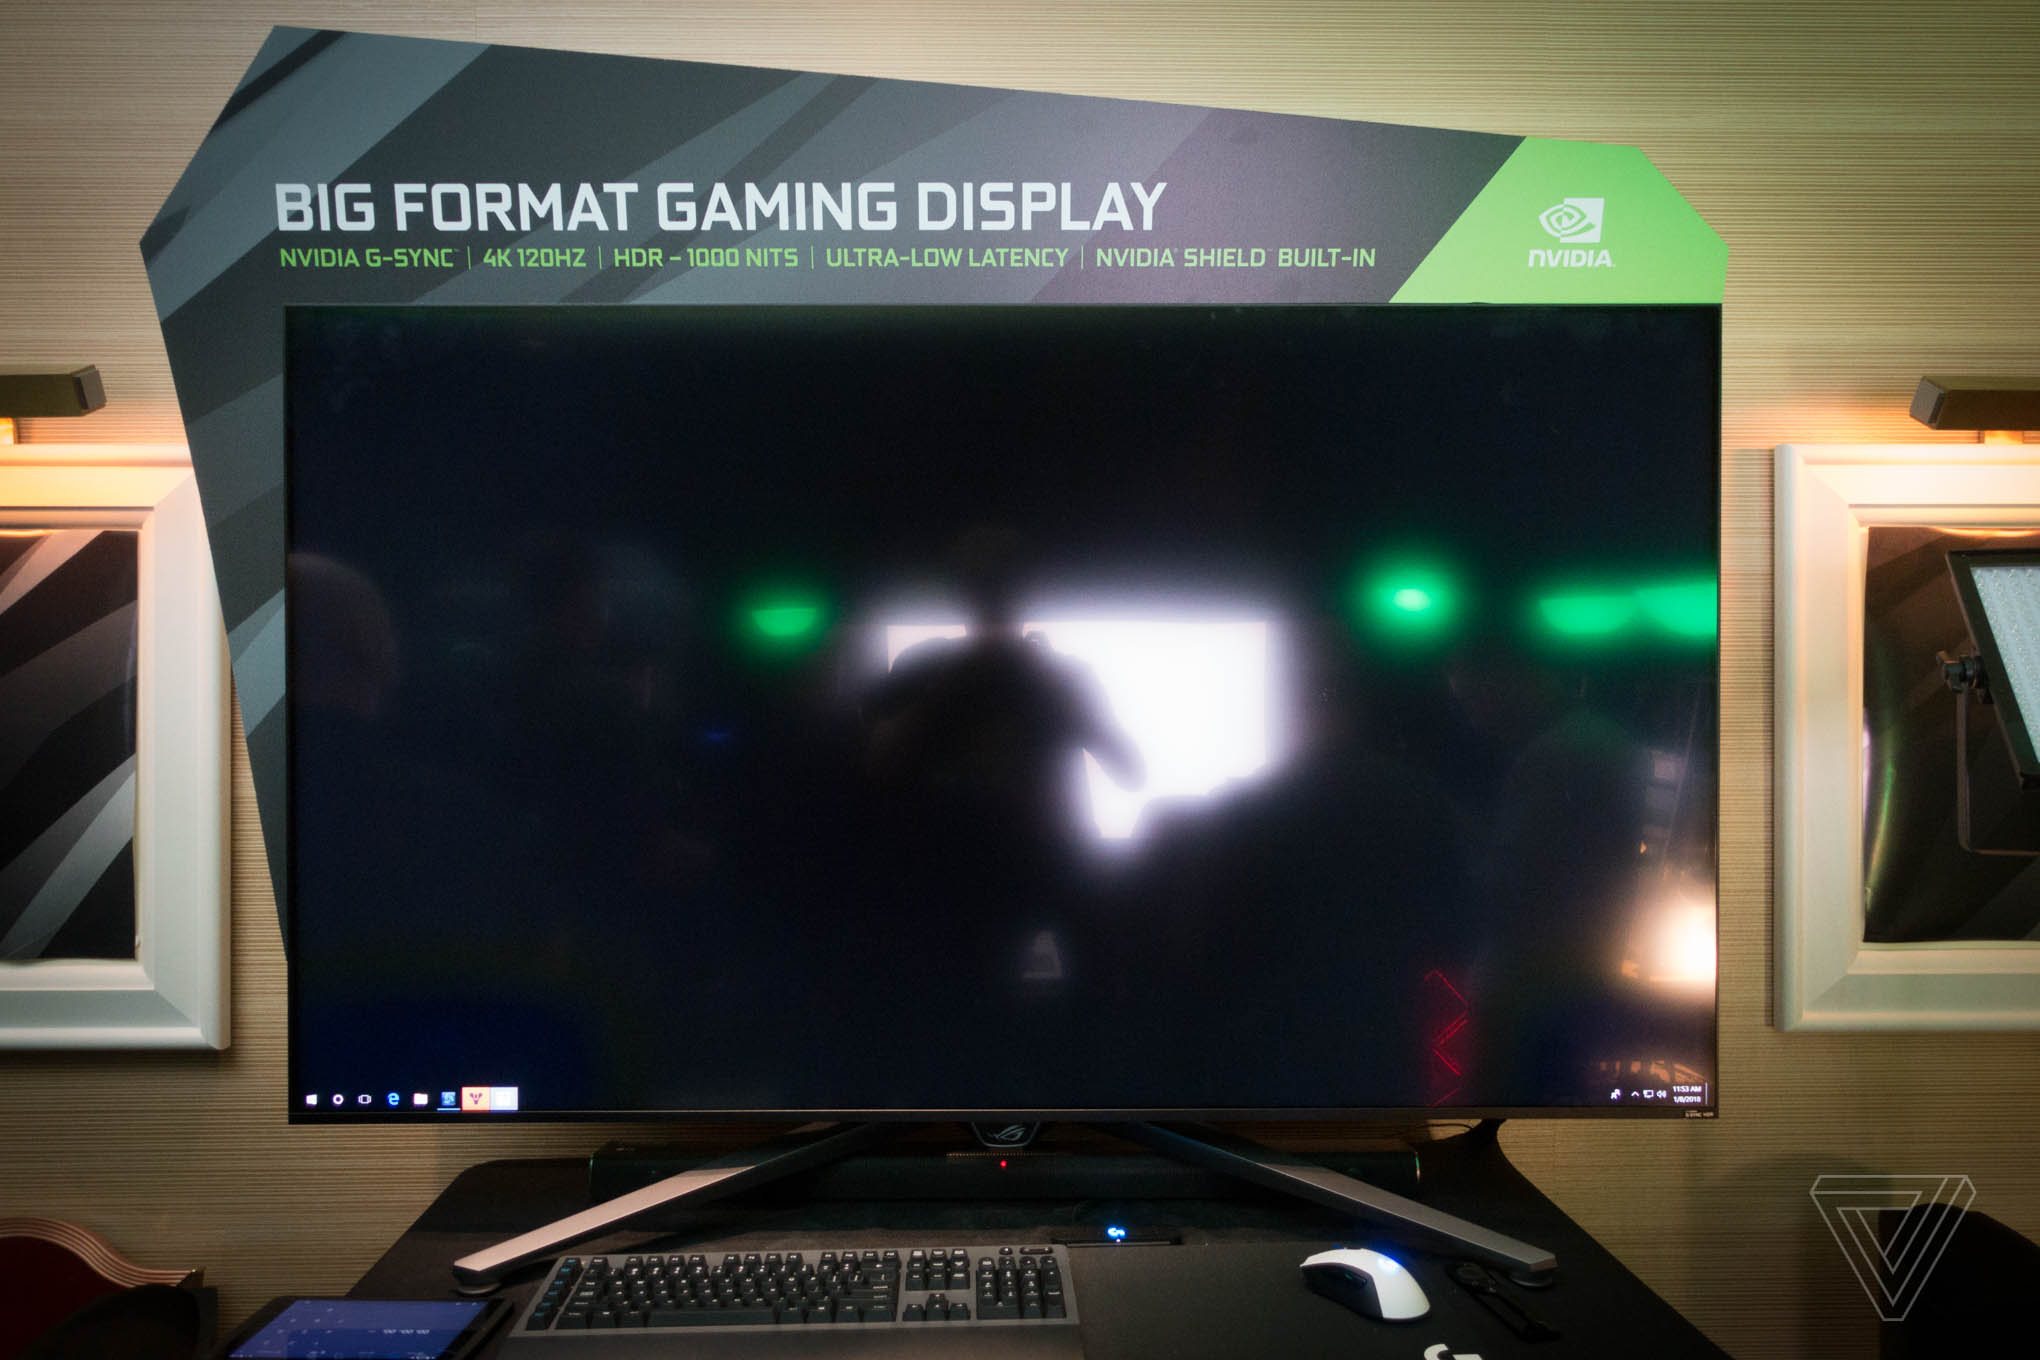 Nvidia's giant 4K gaming displays are a G-Sync dream come true - The